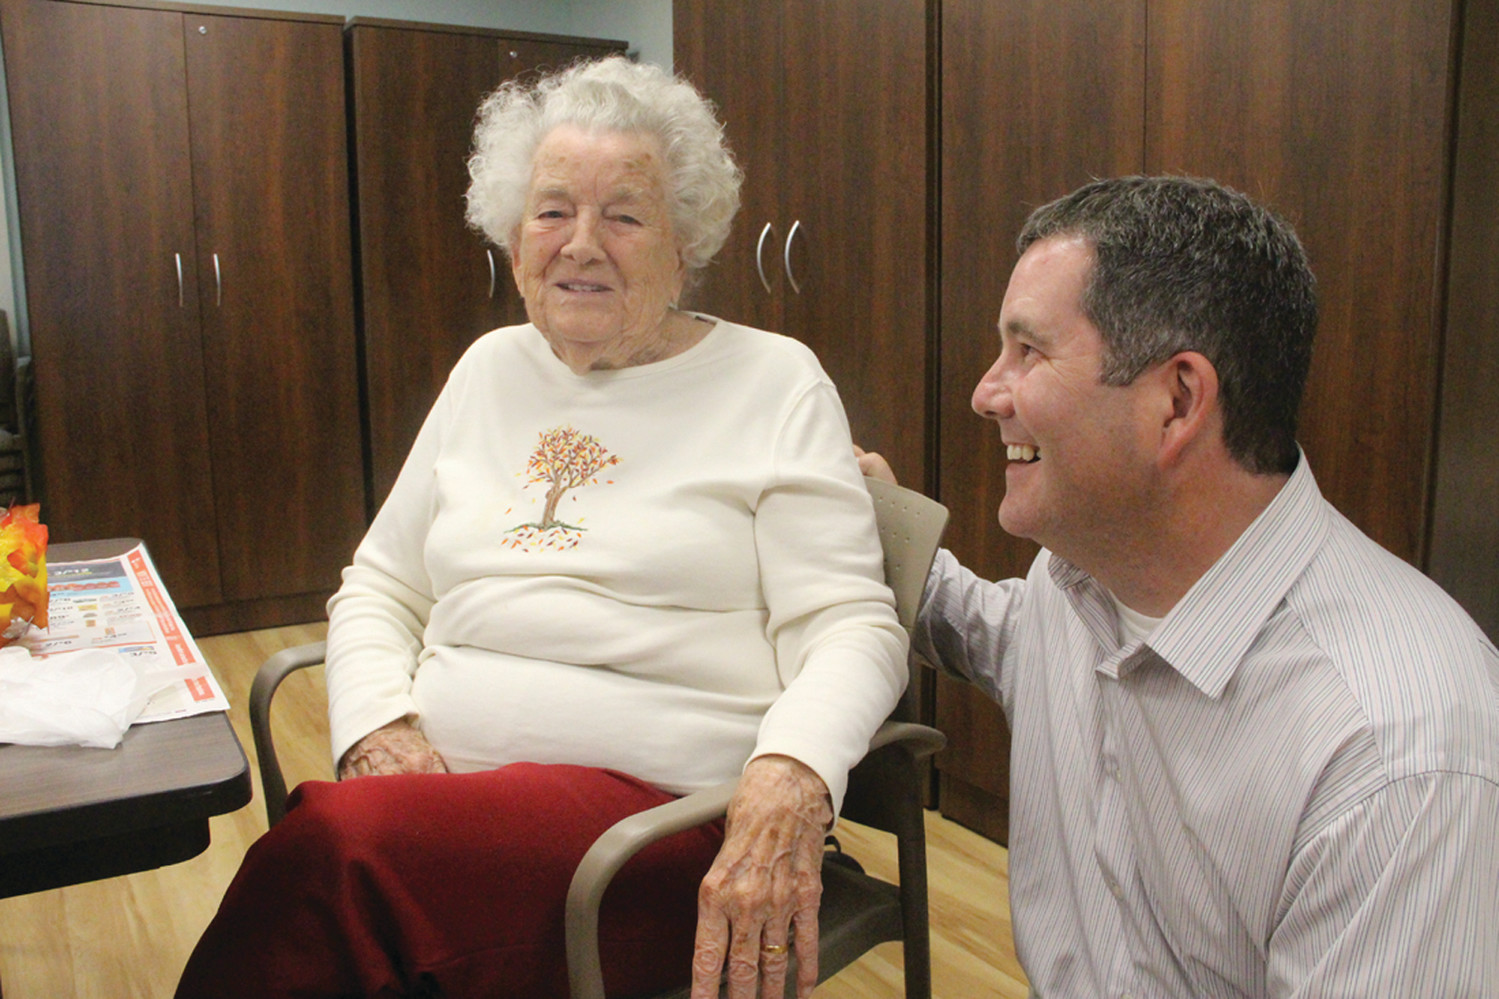 SHARING A LAUGH: Edna Leonard, one of the first residents at Brentwood, and Michael McMahon talk about life at the new assisted living facility.